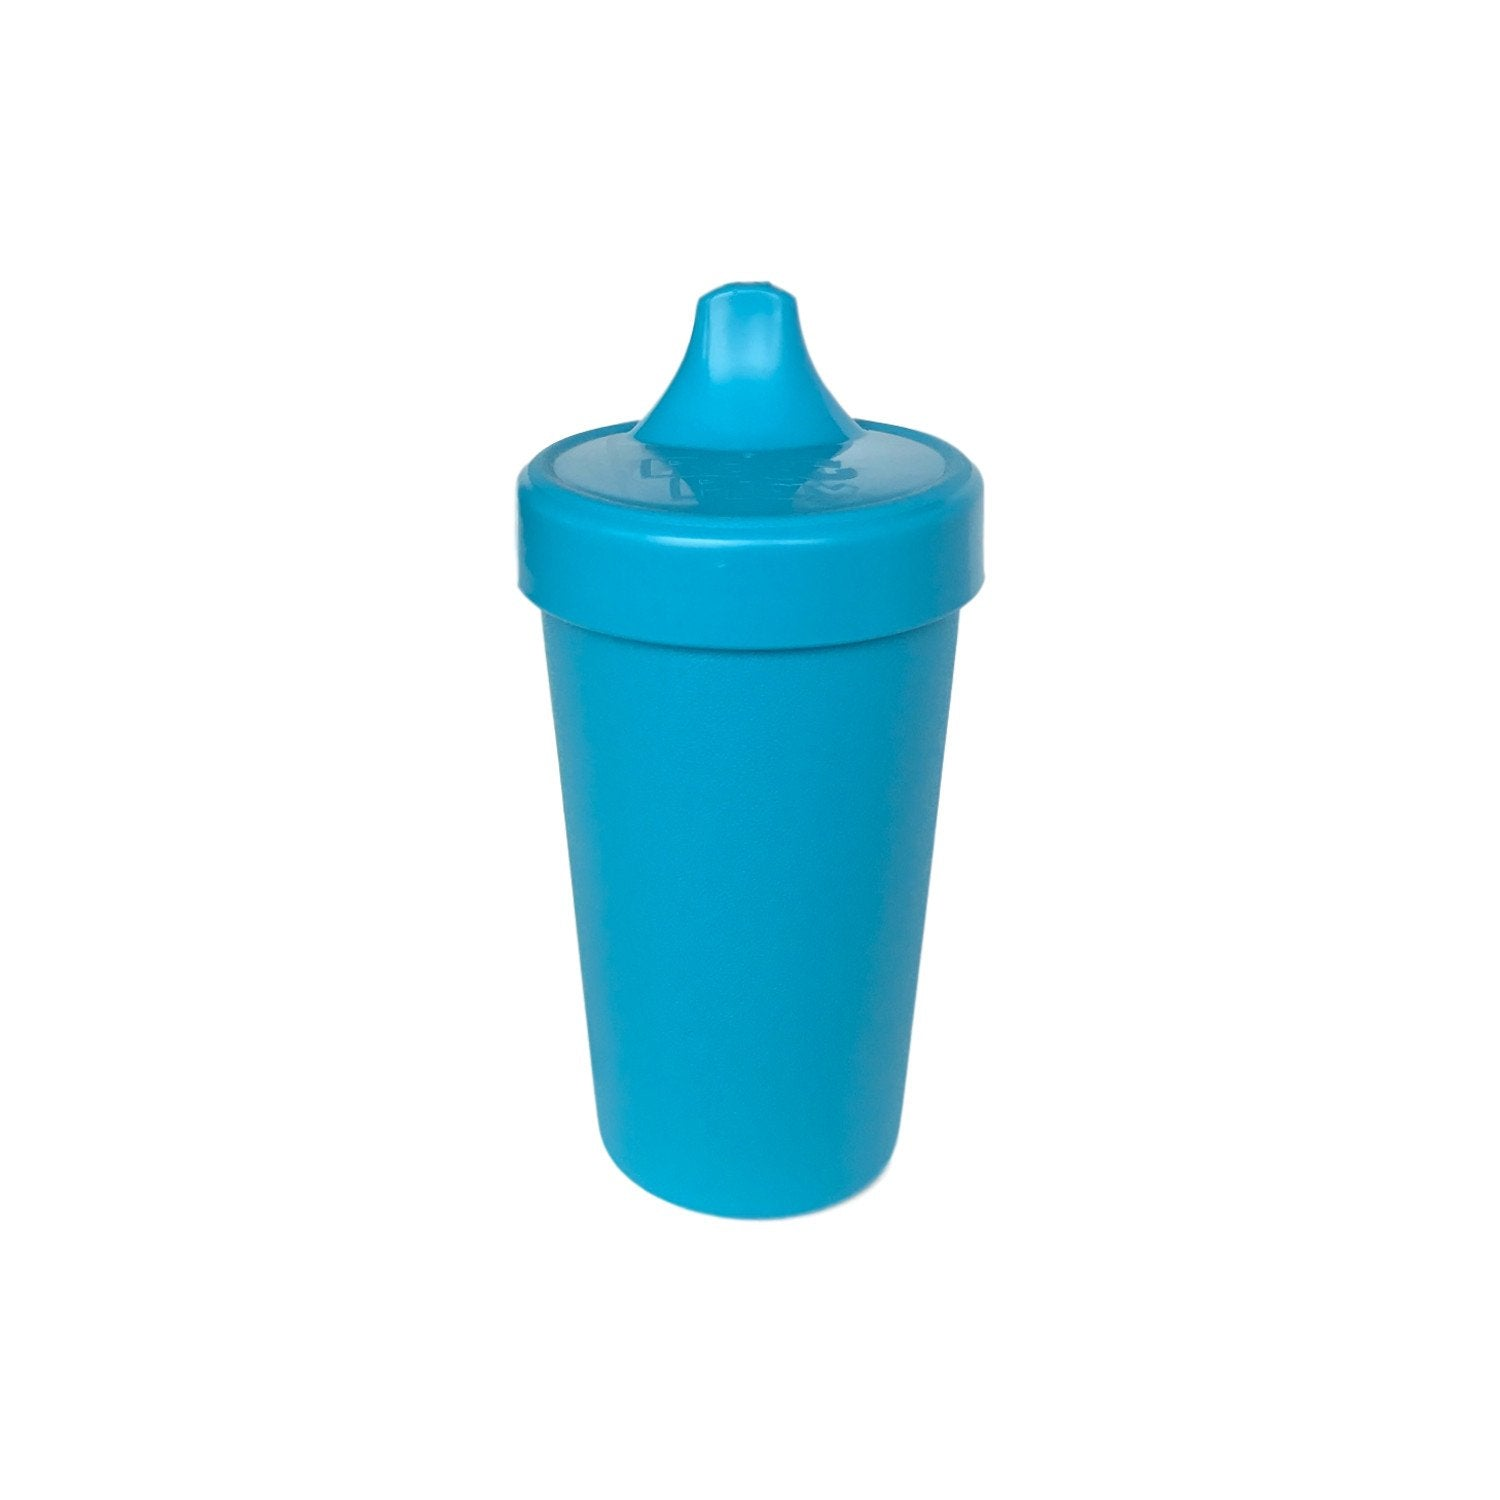 Replay Sippy Cup Replay Sippy Cups Sky Blue at Little Earth Nest Eco Shop